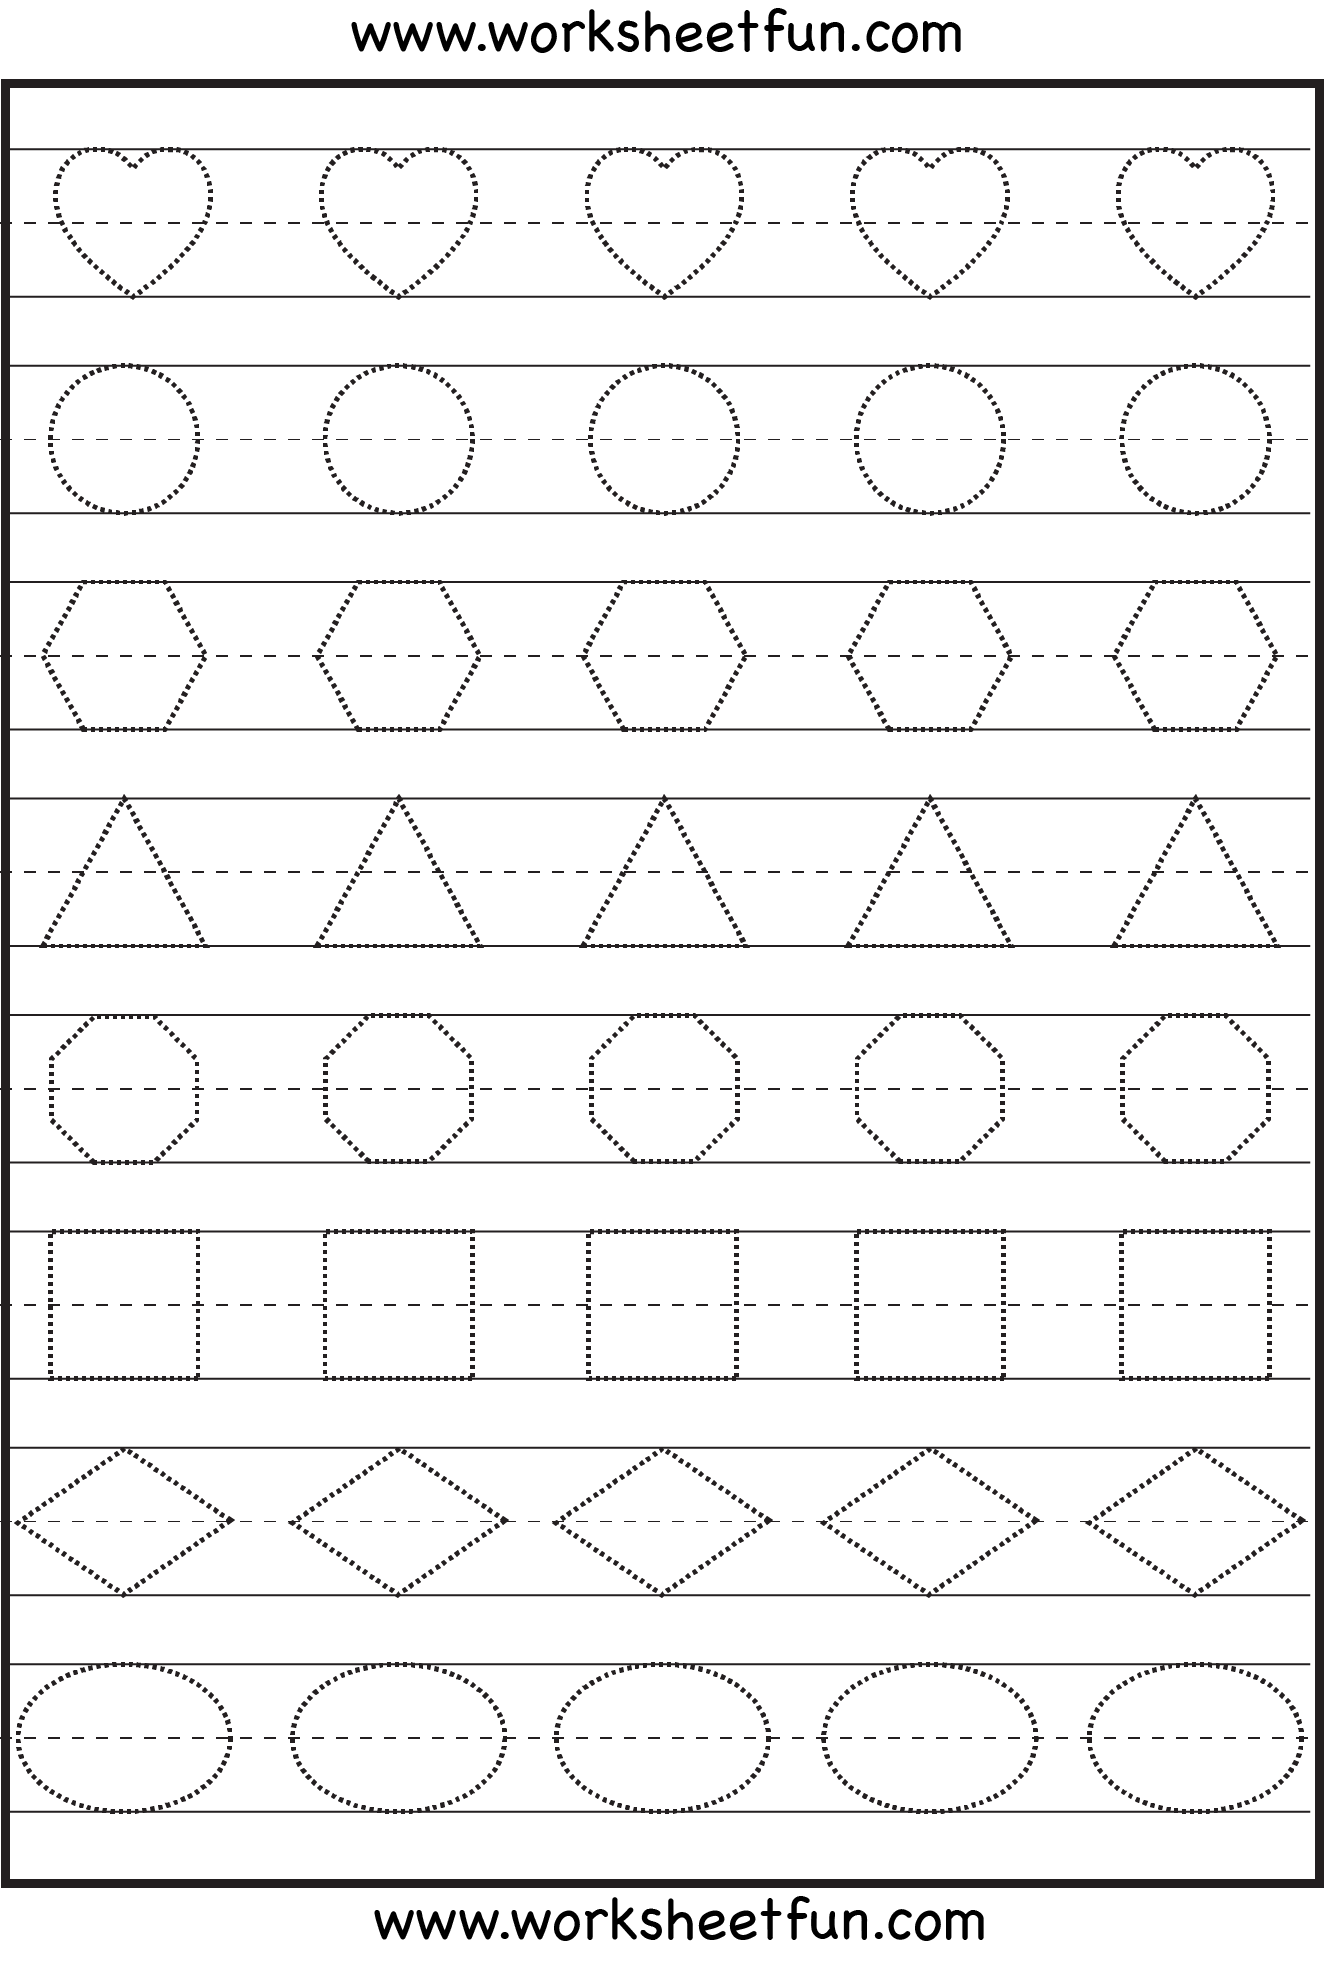 Worksheet Preschool Work Sheets 1000 images about school on pinterest printable preschool worksheets and preschool